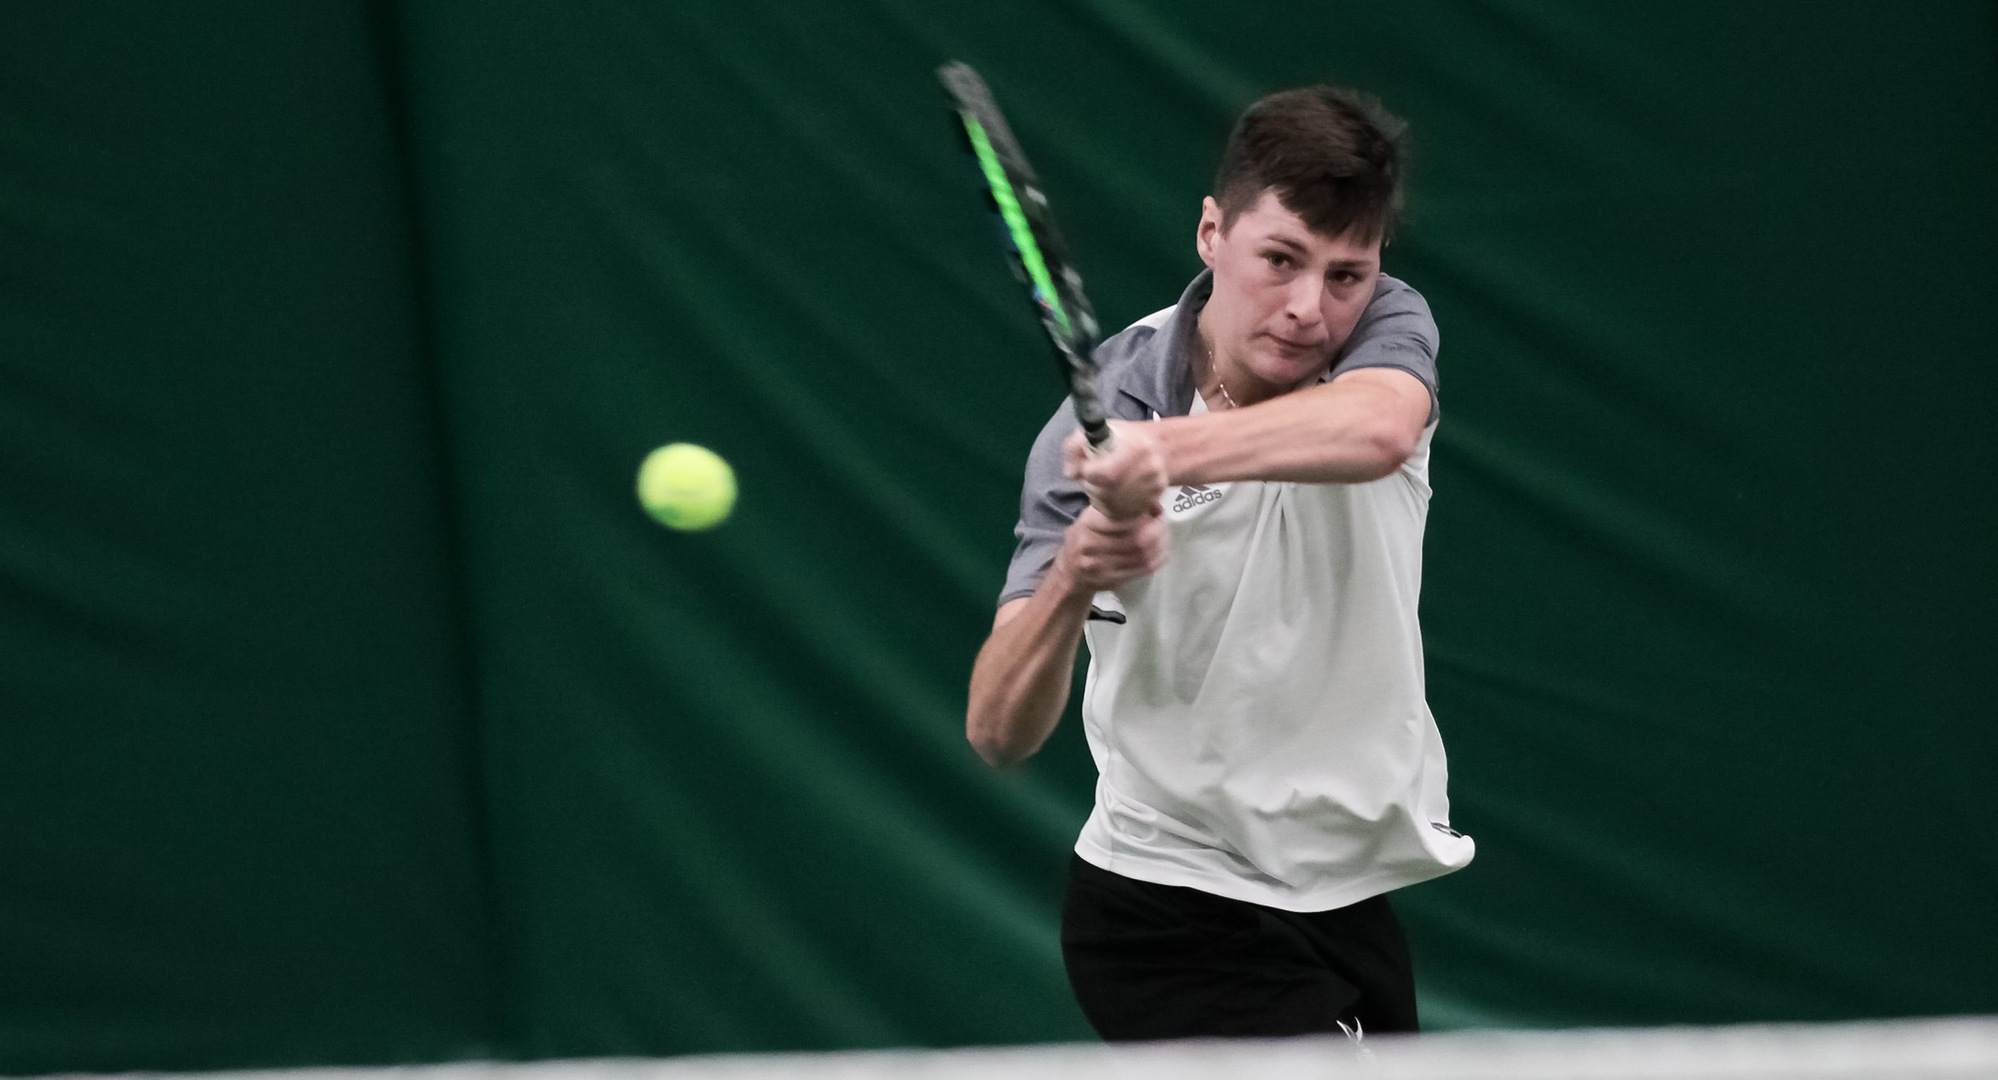 Terry Ends ITA Regional Run In Round Of 16